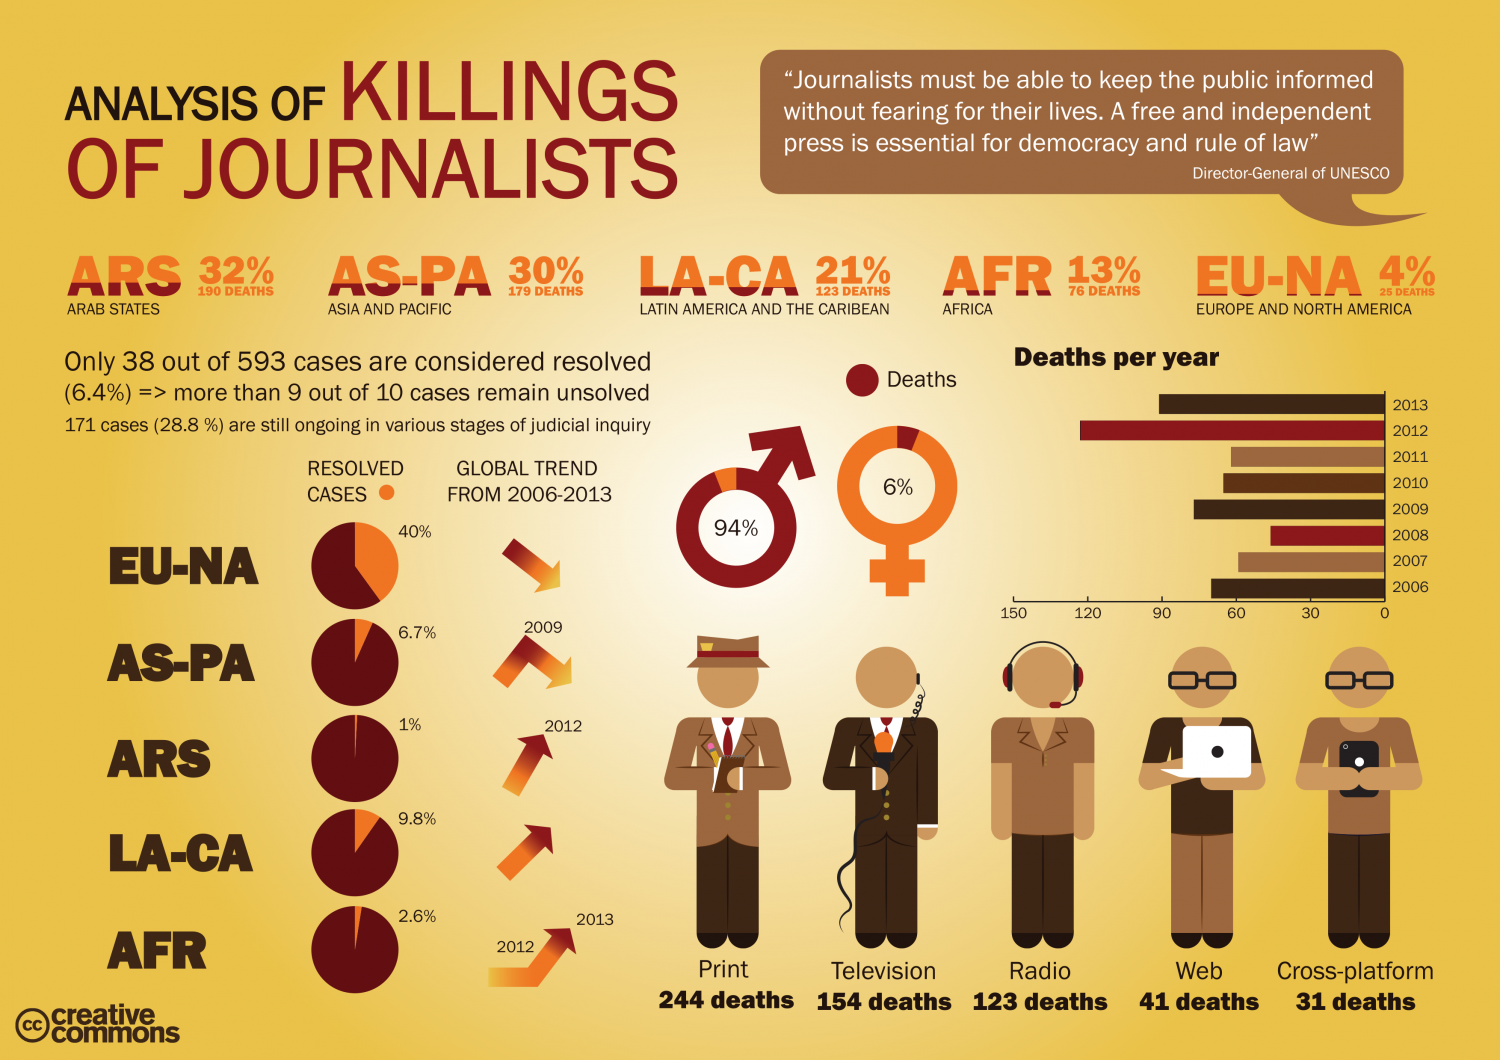 Analysis of Killings of Journalists Infographic